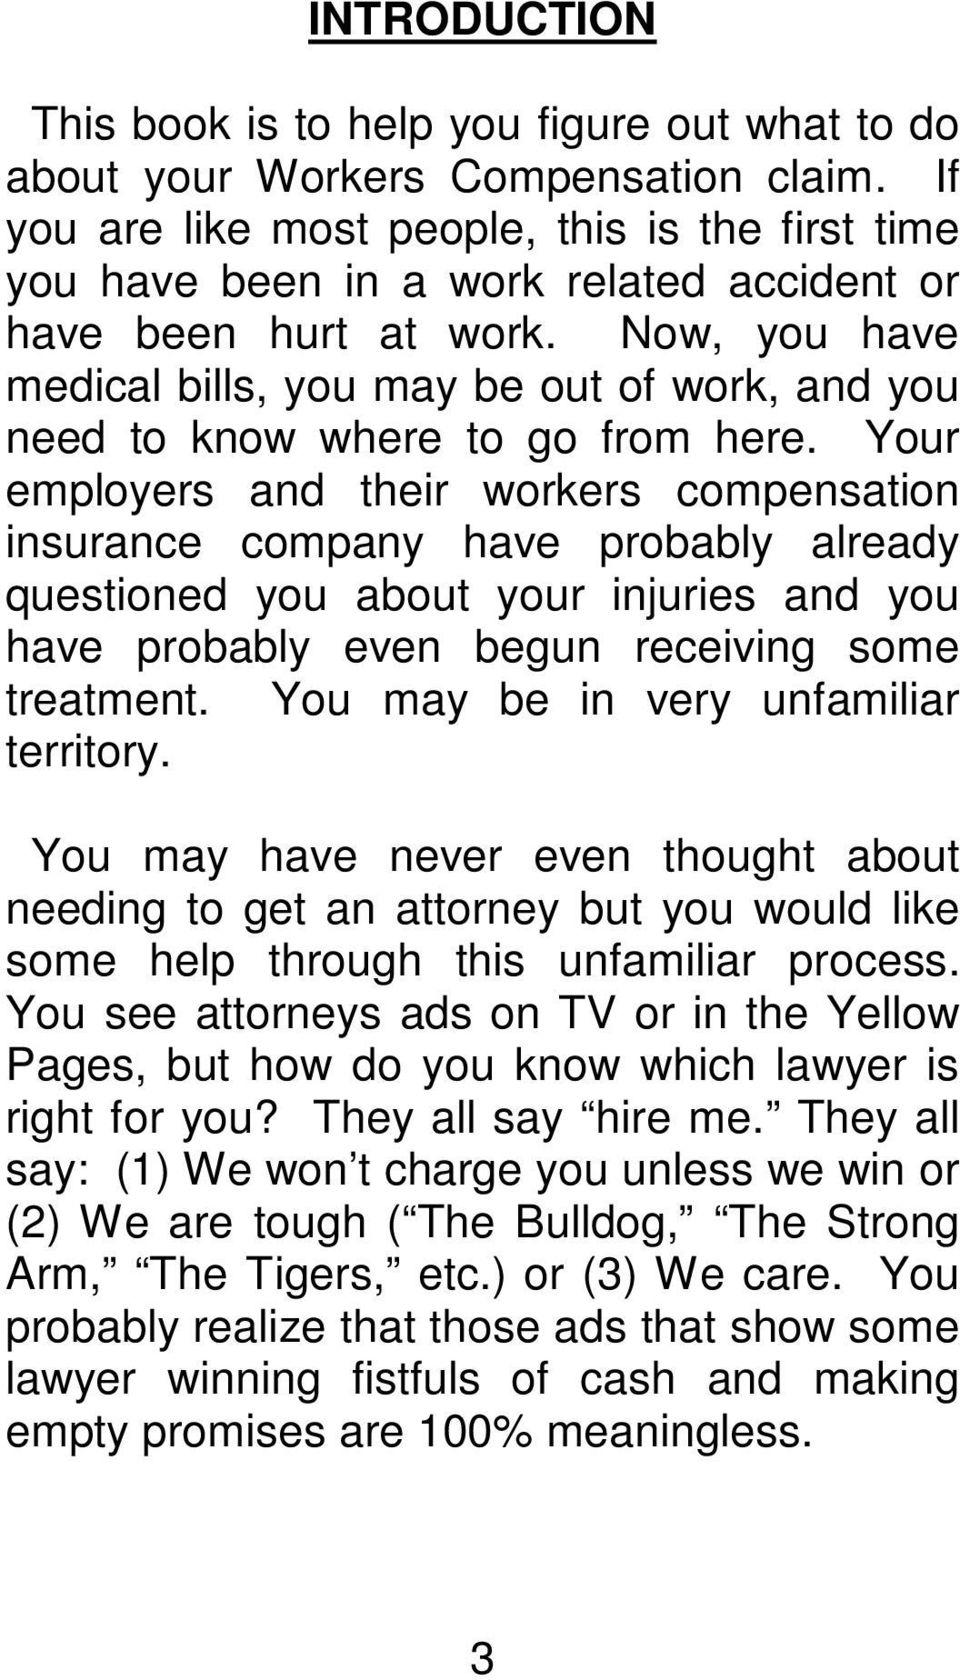 Now, you have medical bills, you may be out of work, and you need to know where to go from here.